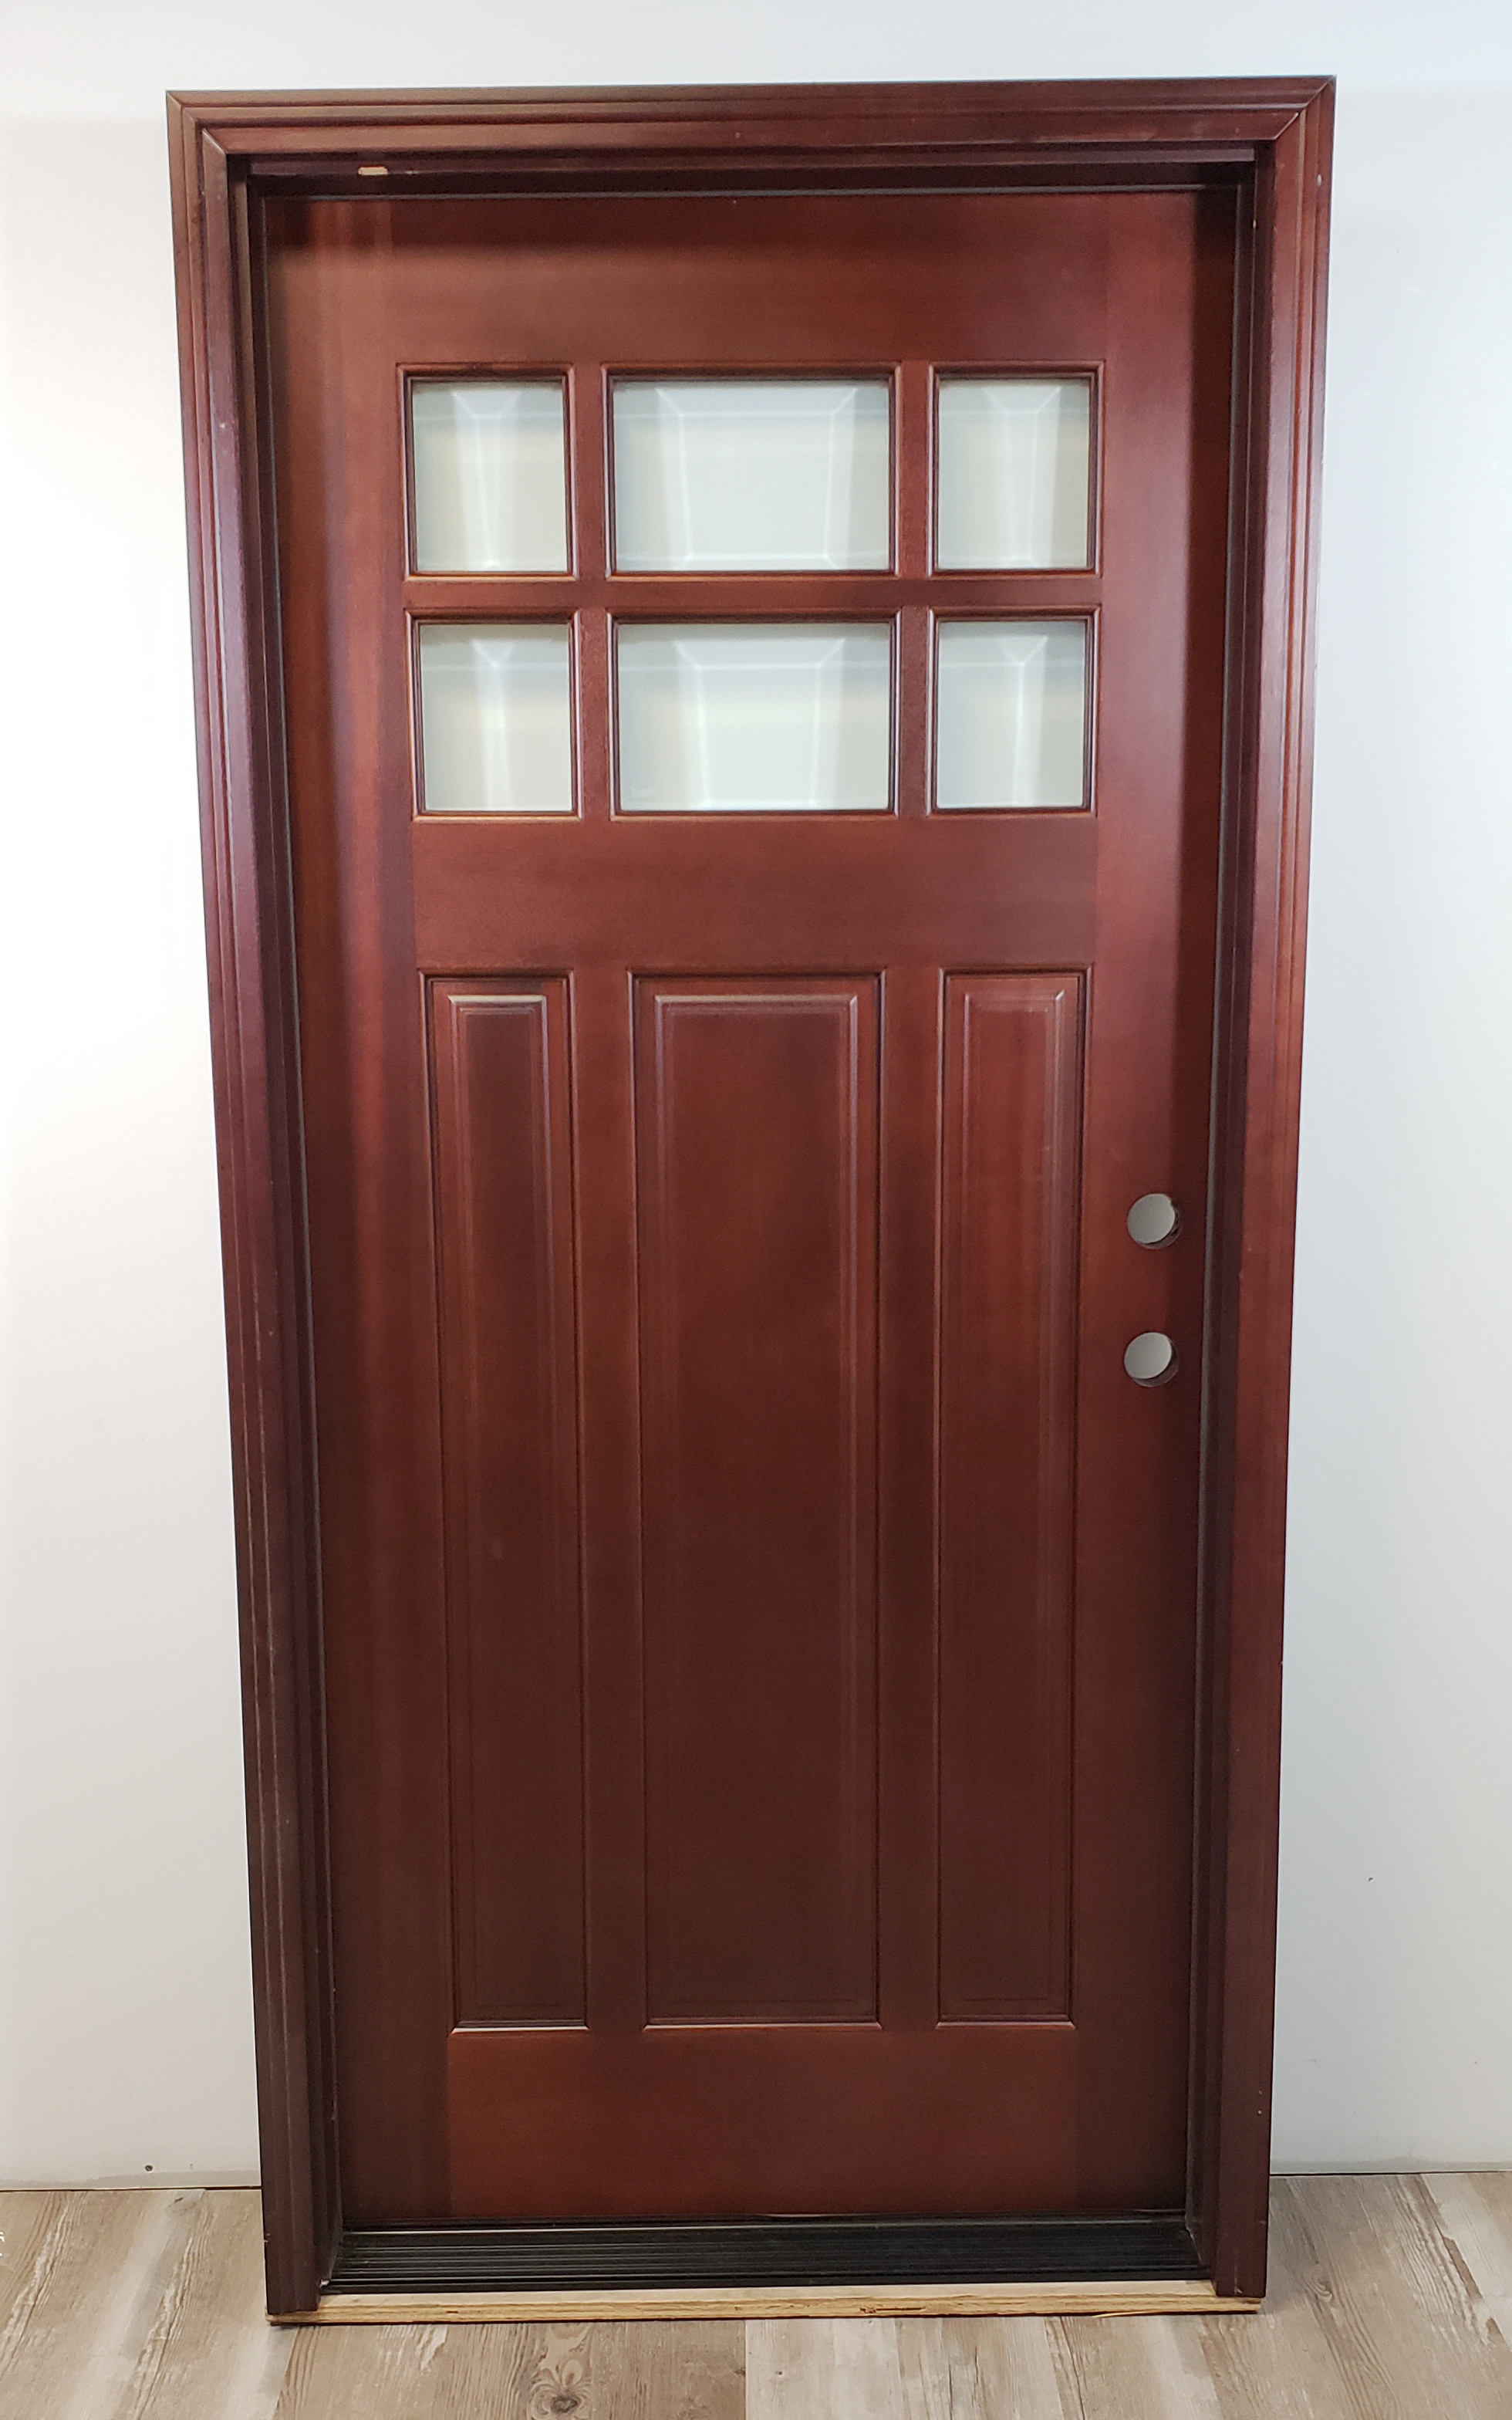 wood-pacific-entry-glass-craftsman-exterior-door-mahogany-finish